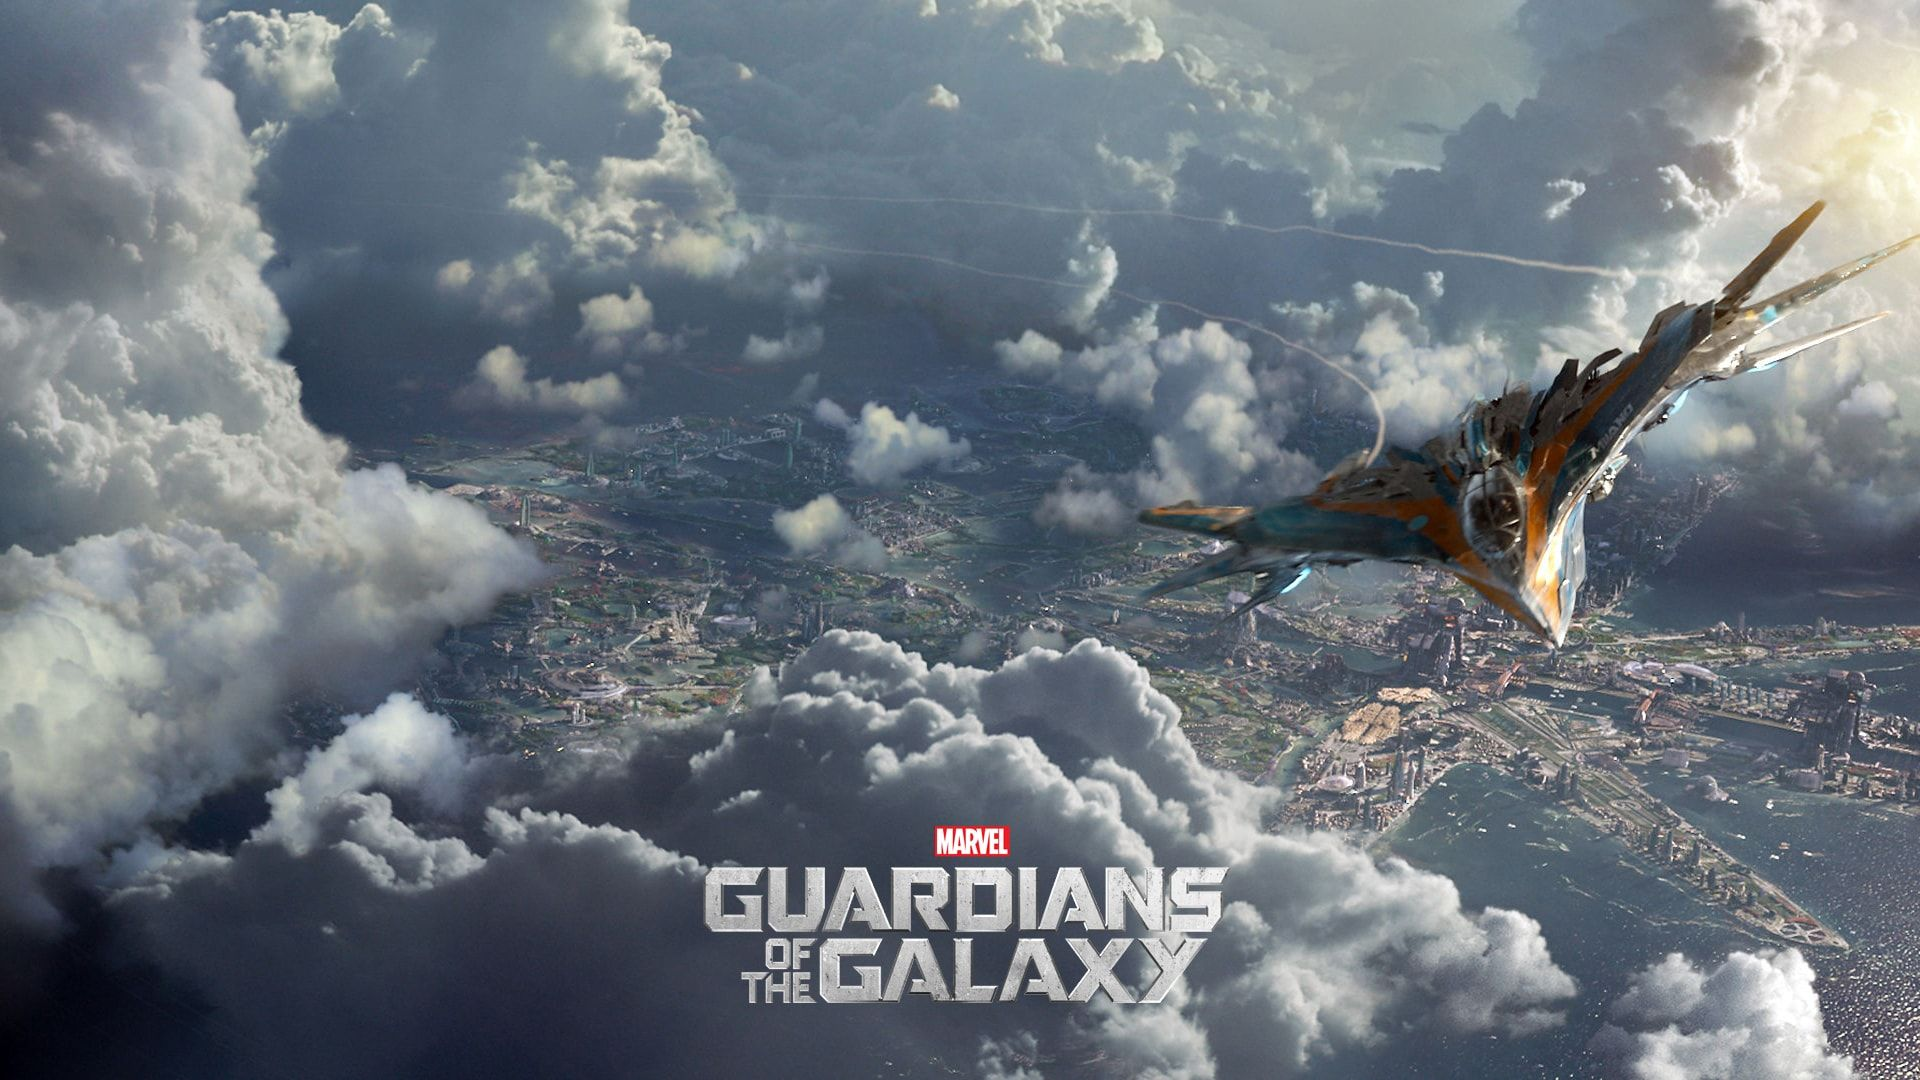 Undefined Guardians Of The Galaxy Wallpaper 39 Wallpapers Adorable Wallpapers Guardians Of The Galaxy Galaxy Pictures Sci Fi Spaceships